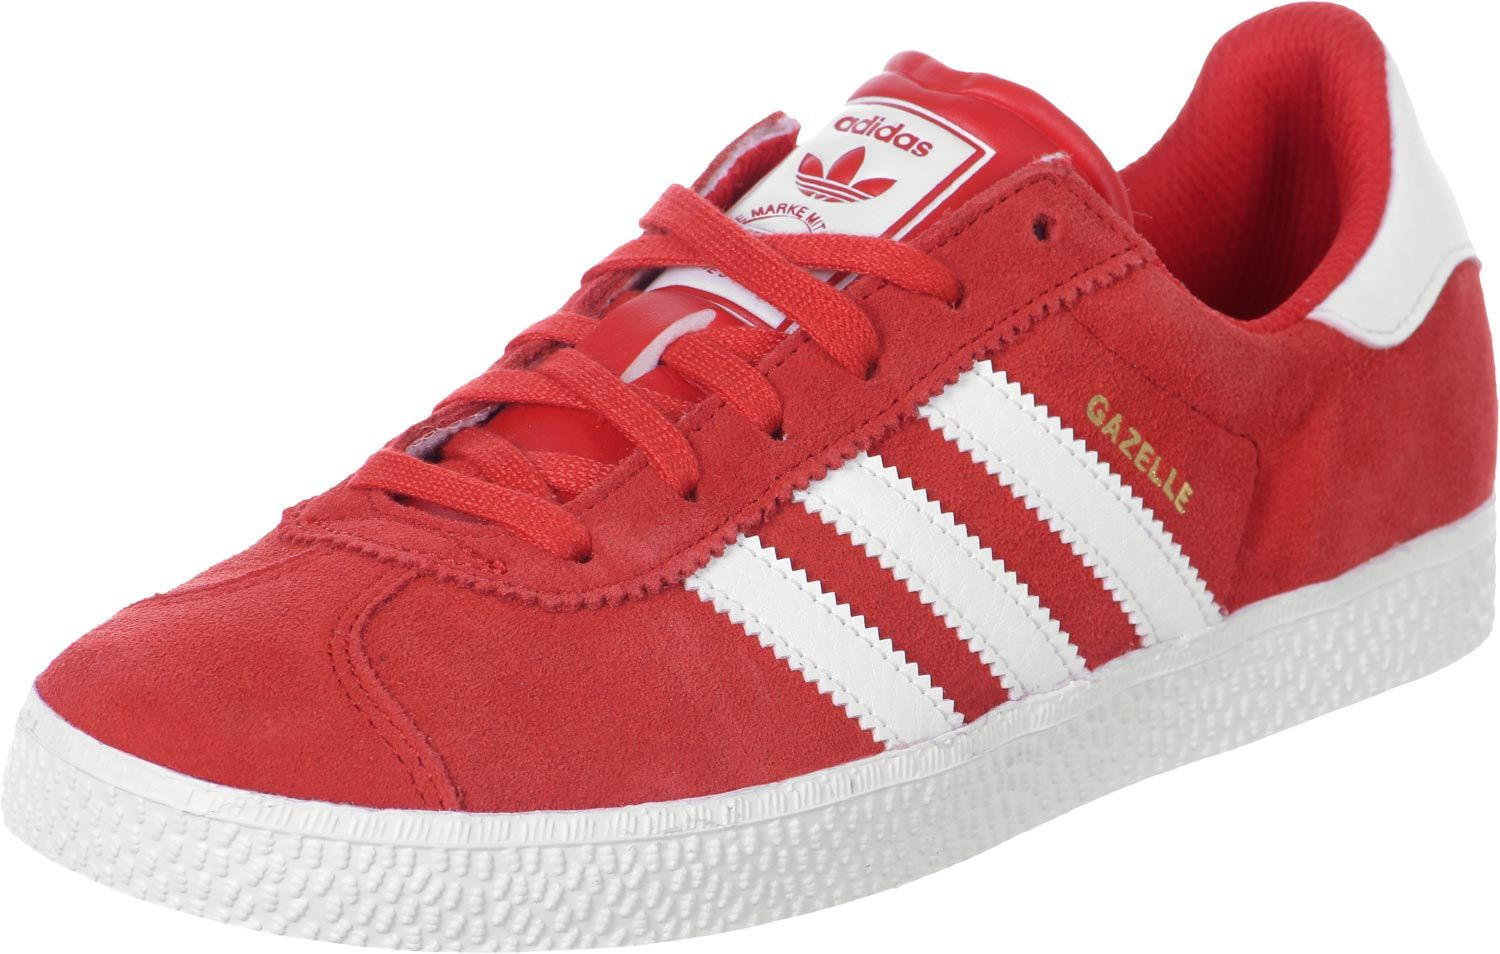 Adidas Gazelle, Dress Codes, Swag, Red, Outfits, Shoe